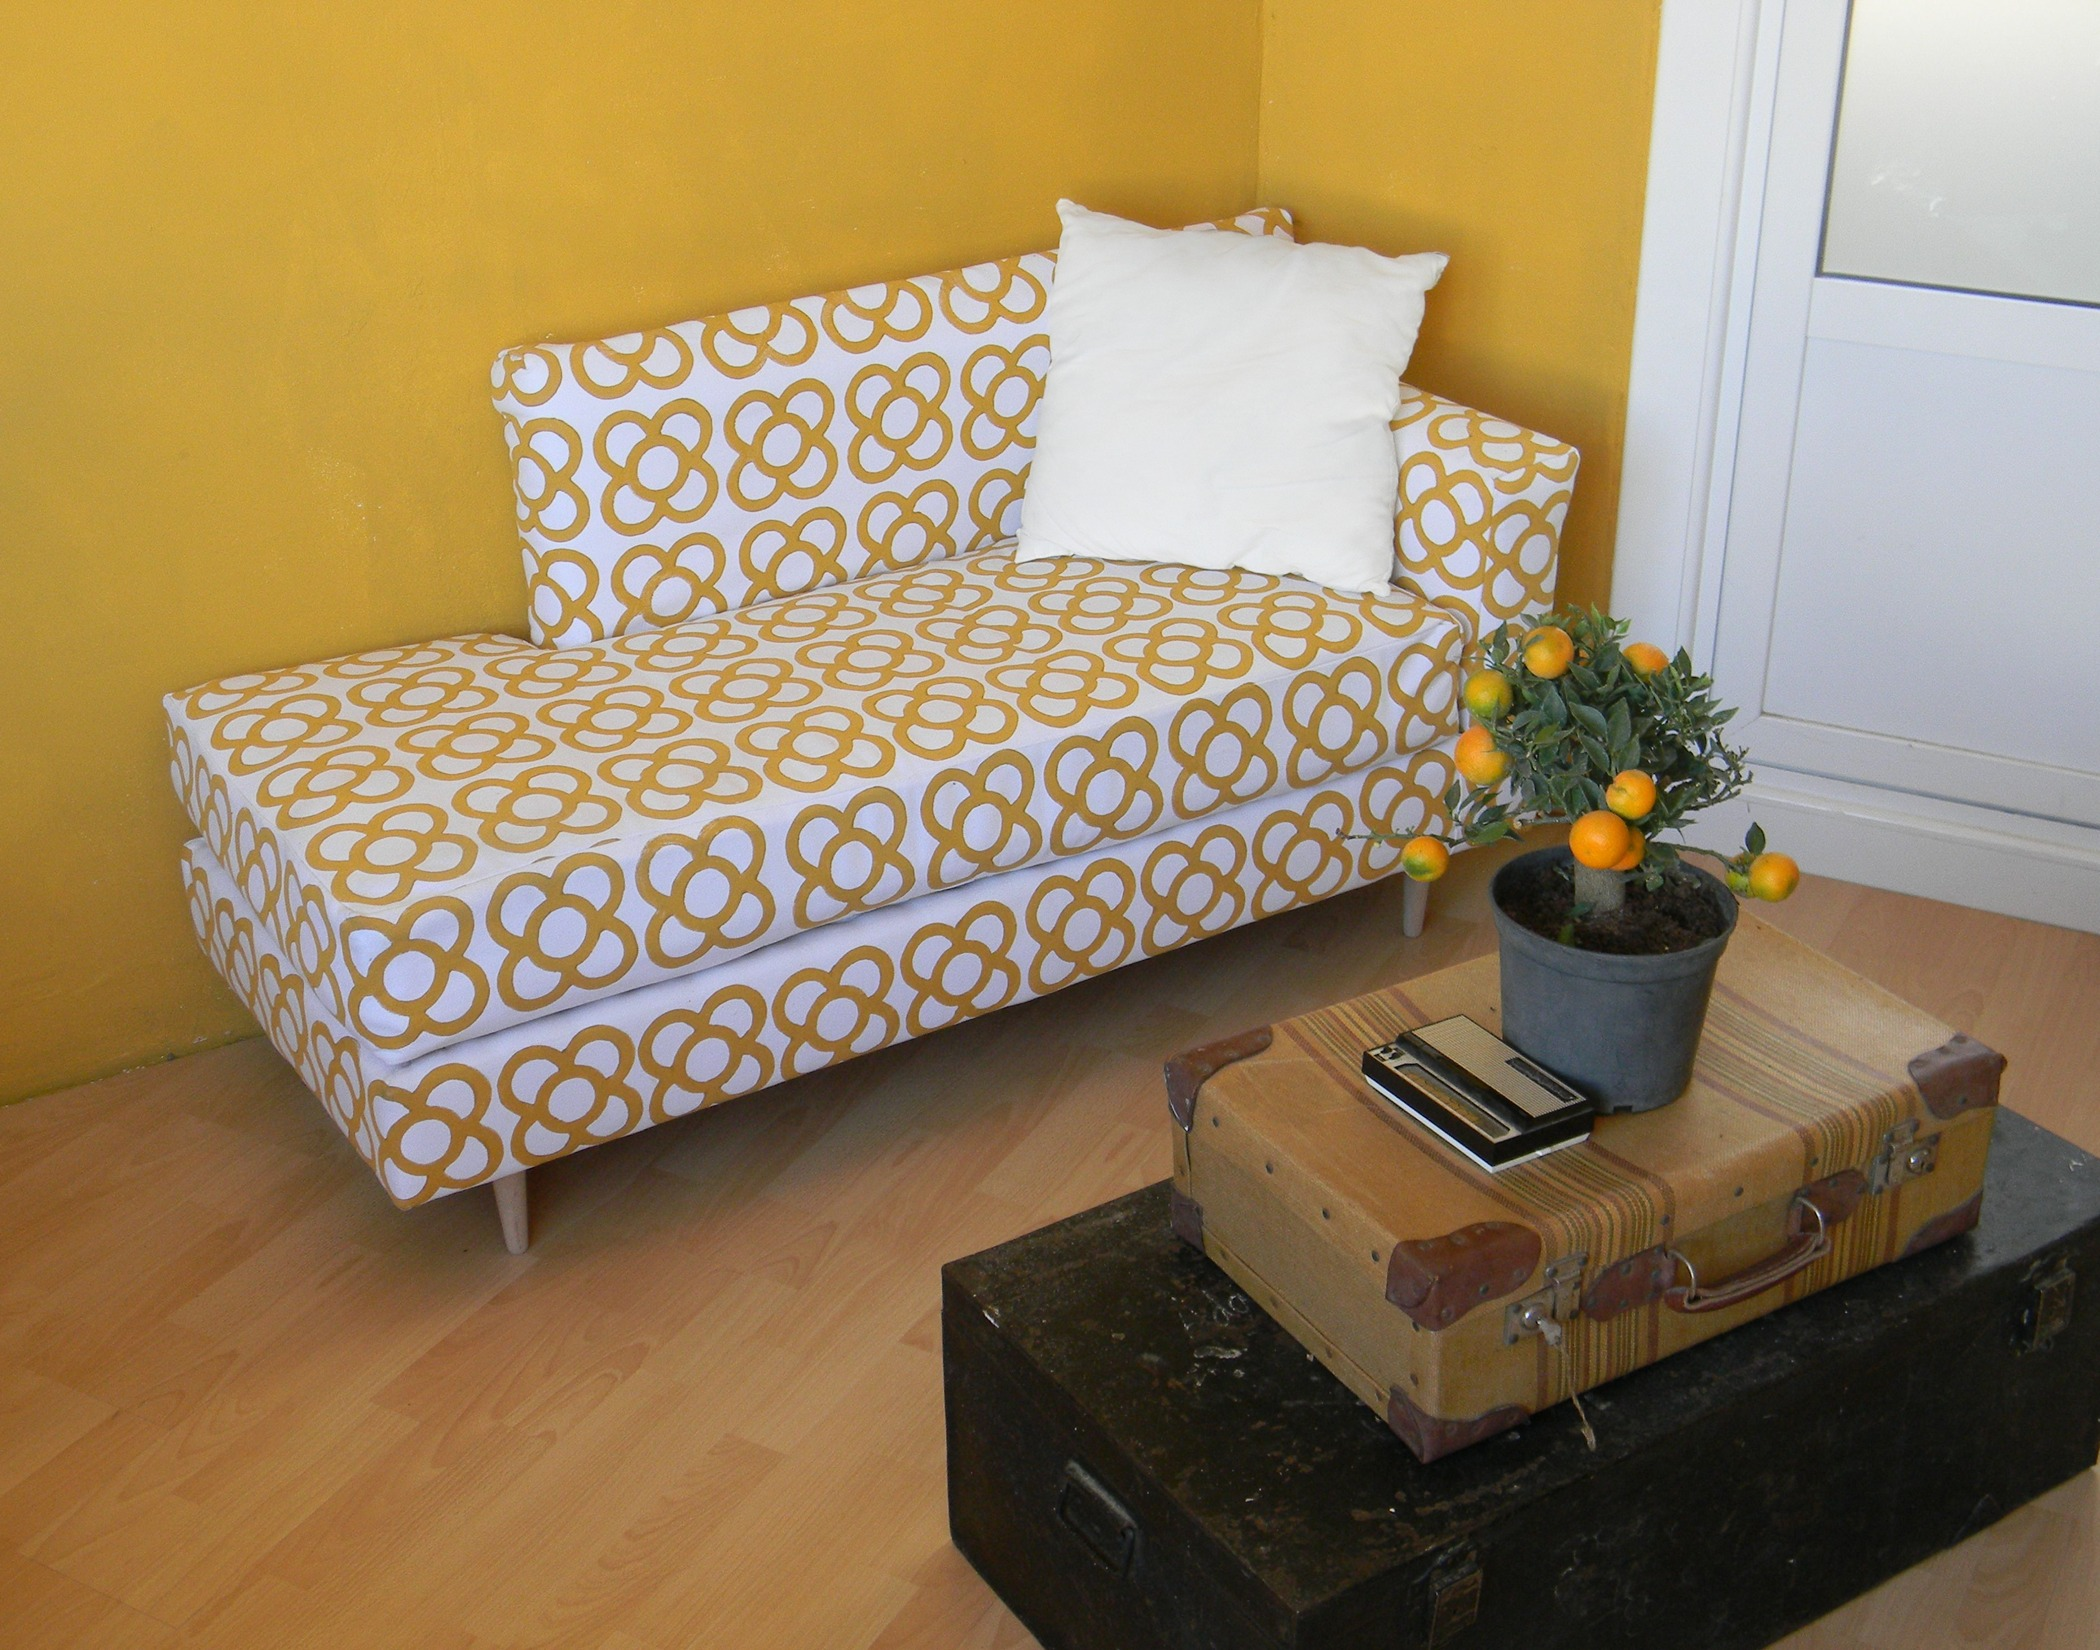 Balkarp Sofa Bed   Sofa with Trundle   Couch with Trundle